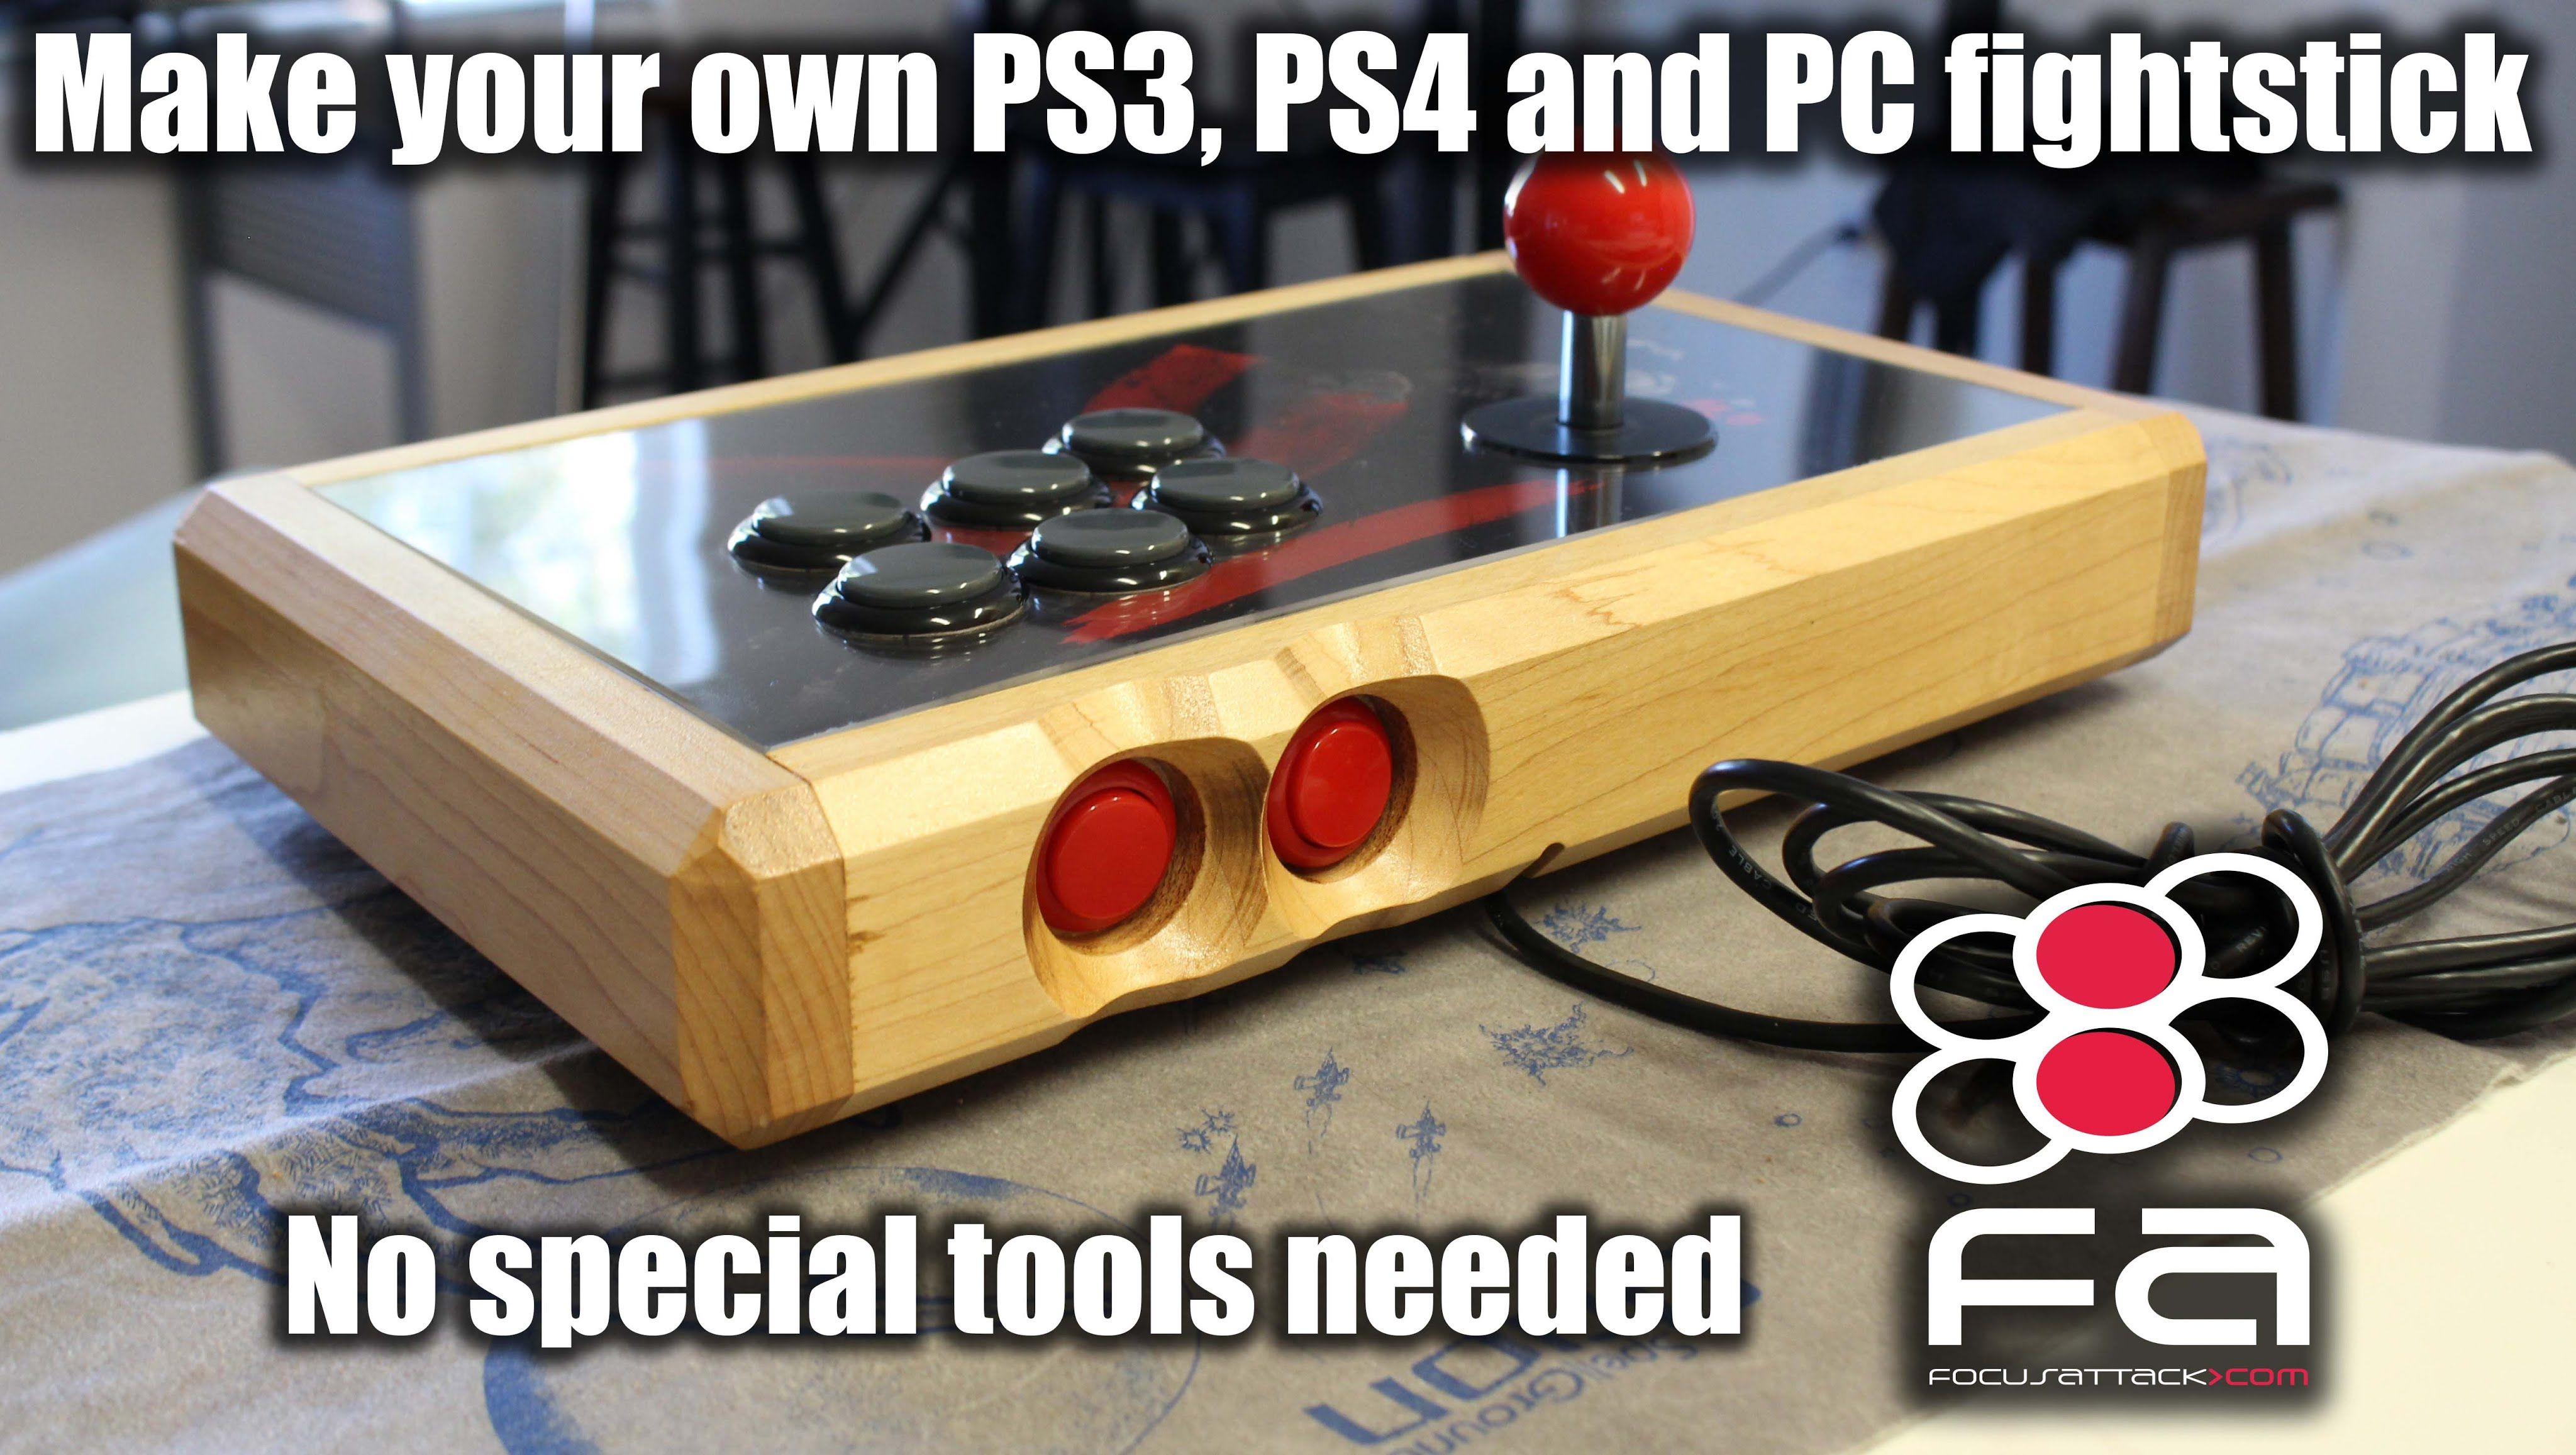 Make Your Own Ps4 Fighstick The Easy Way Arcade Stick Make It Yourself Arcade Console